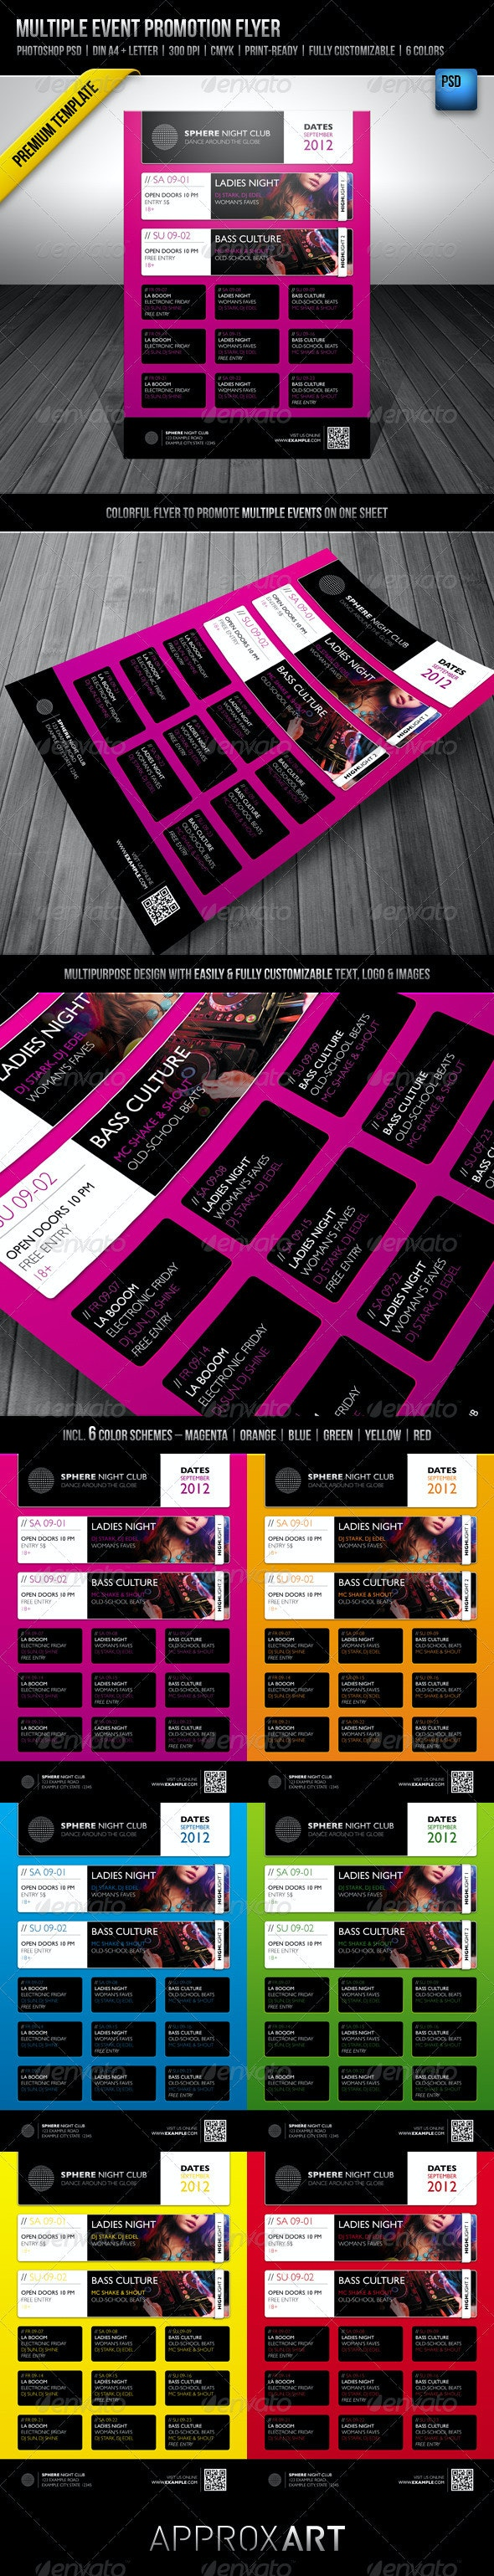 Multiple Event Promotion Flyer - Clubs & Parties Events